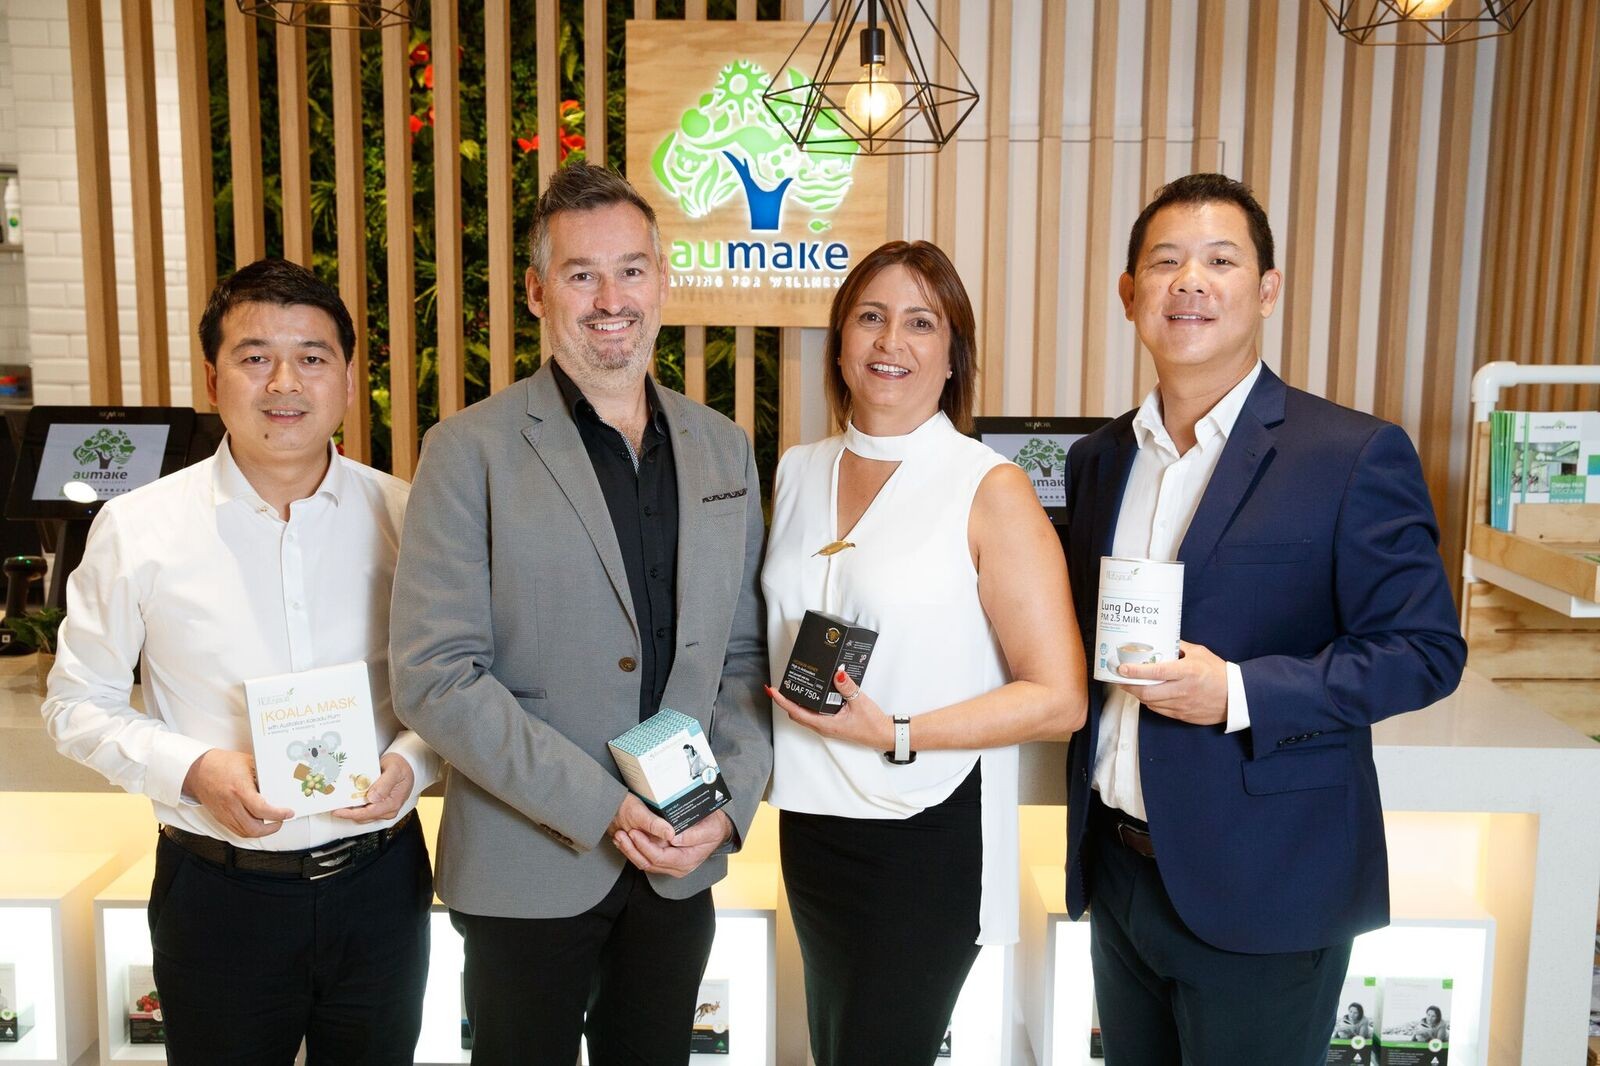 Joshua Chan (Au Make Managing Director and CEO), Michael Dixon (CEO Chemsave), Anita Dimetriou (Chemsave Marketing Manager), Keong Chan (AU Make Executive Chairman).